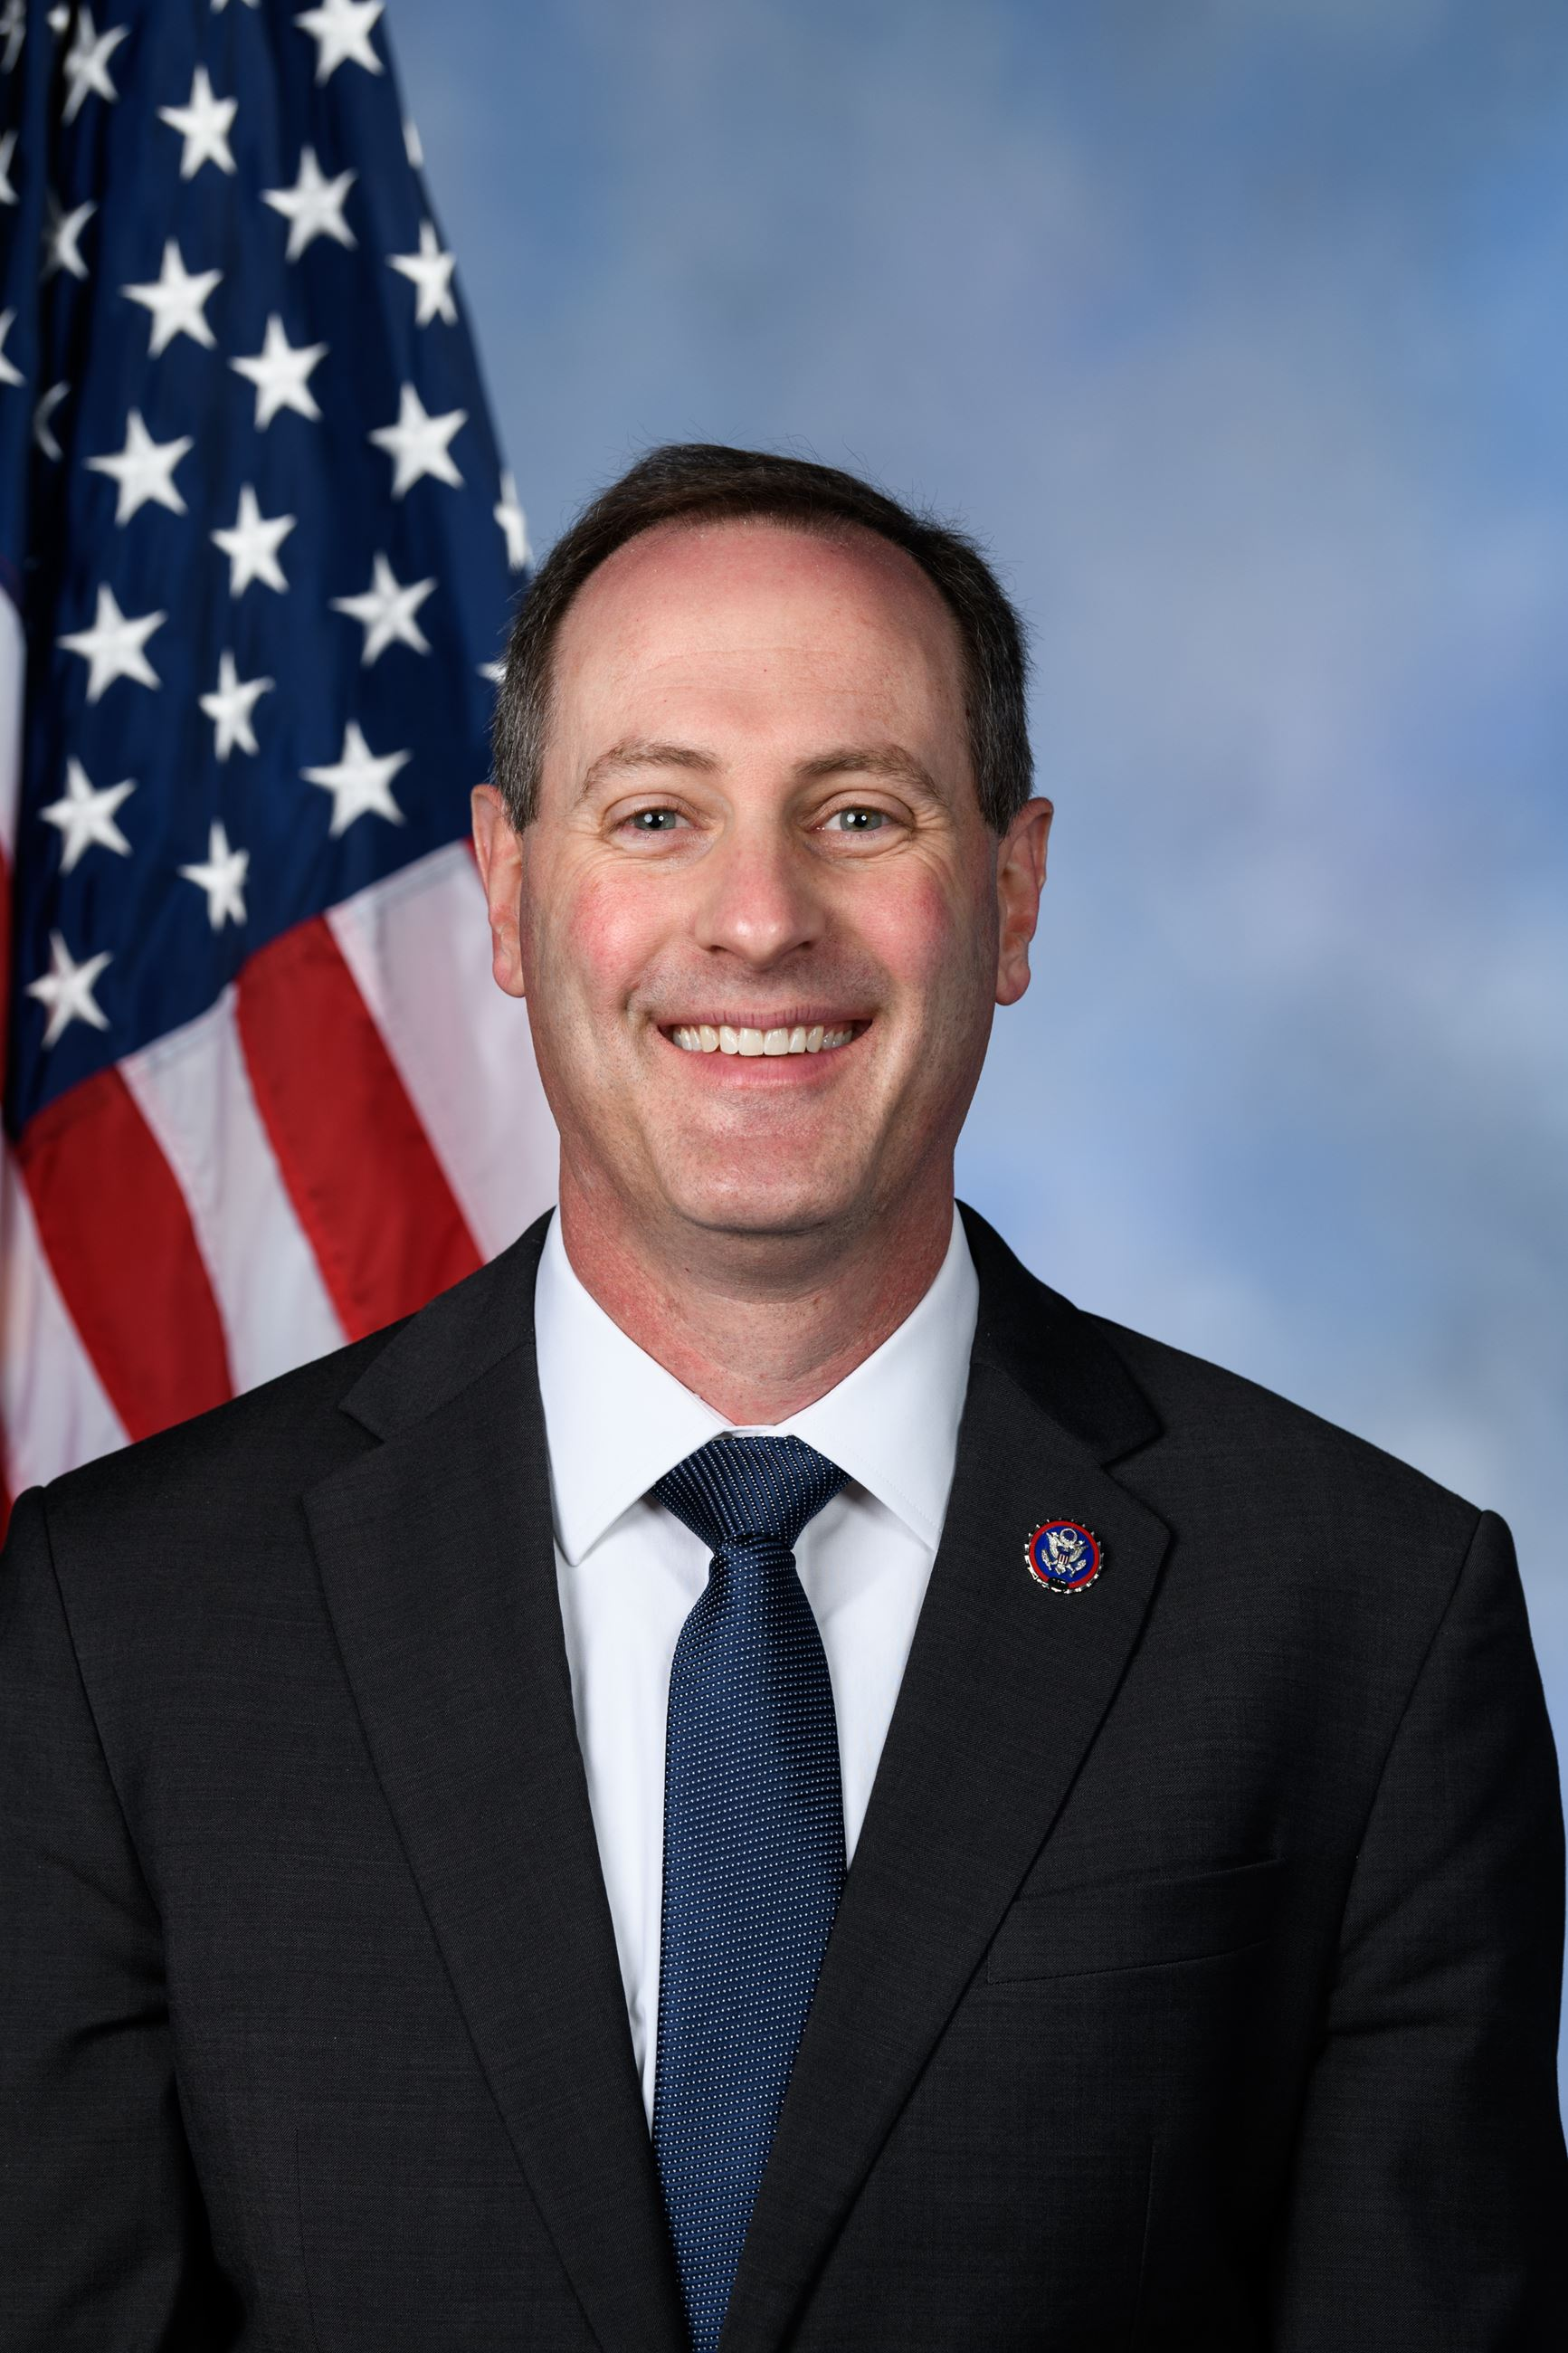 Rep. Mann headshot